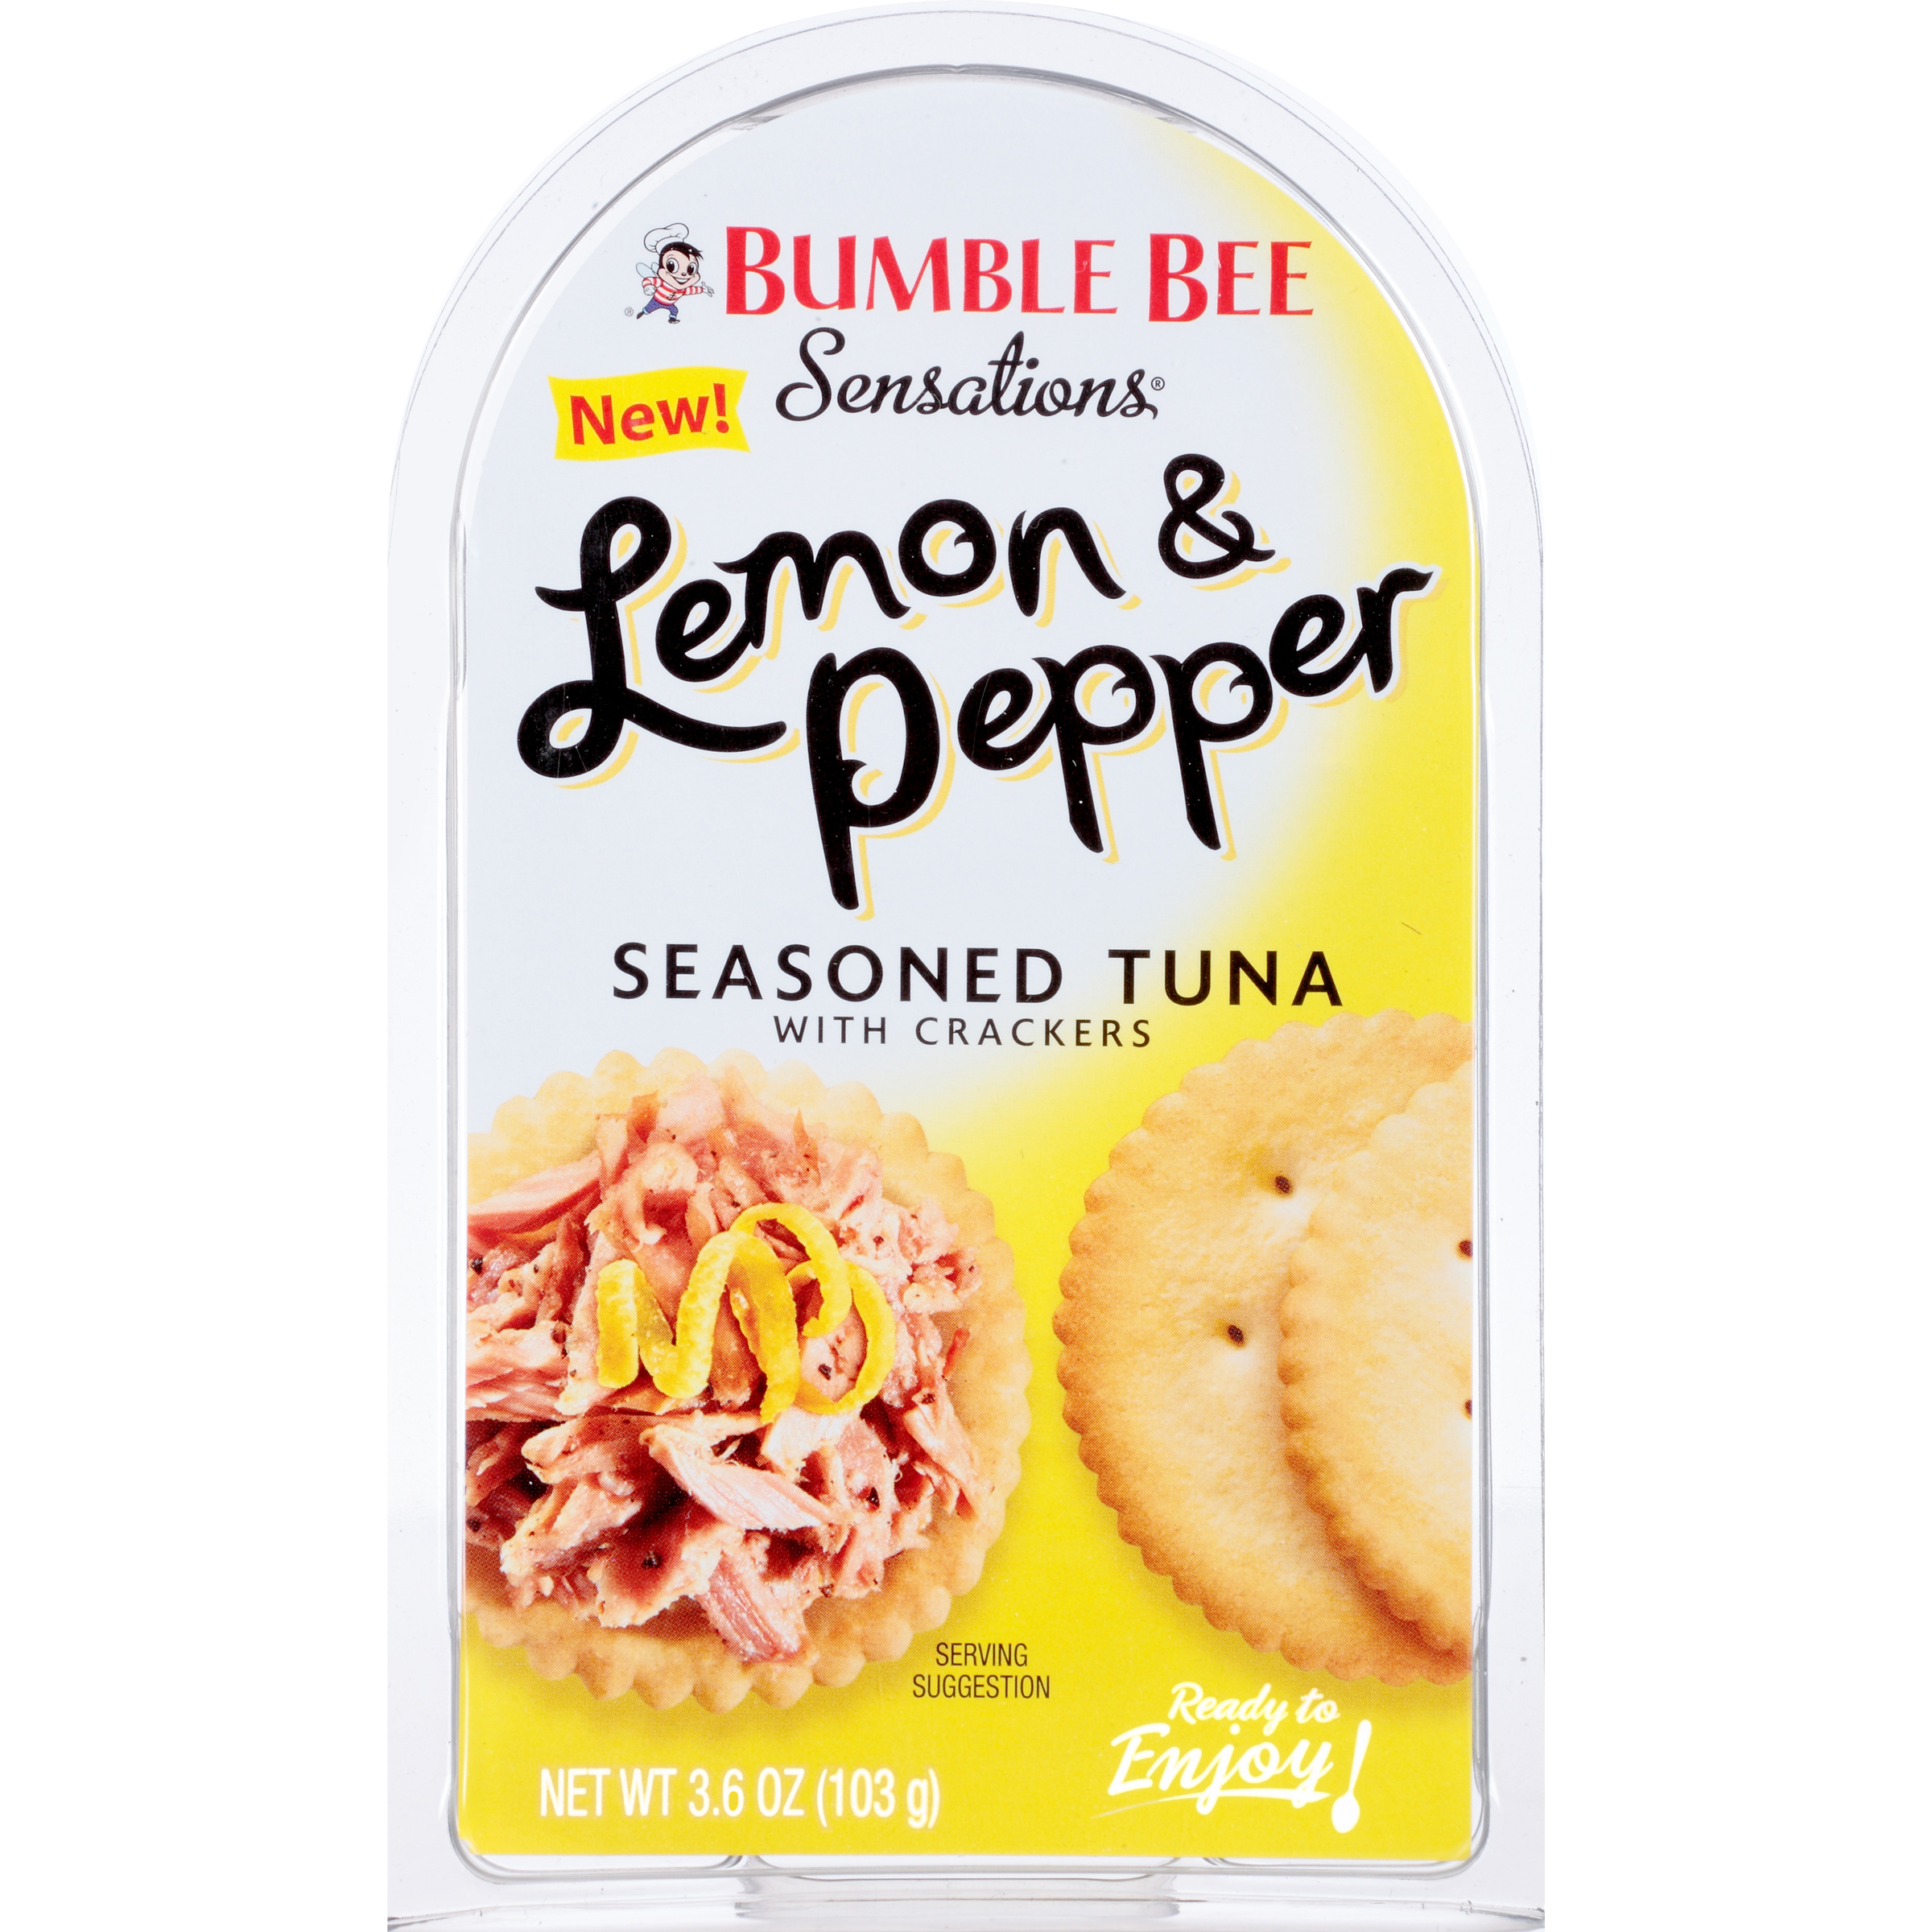 Bumble Bee Sensations Lemon Pepper Flavored Tuna with Crackers, 3.6oz kit